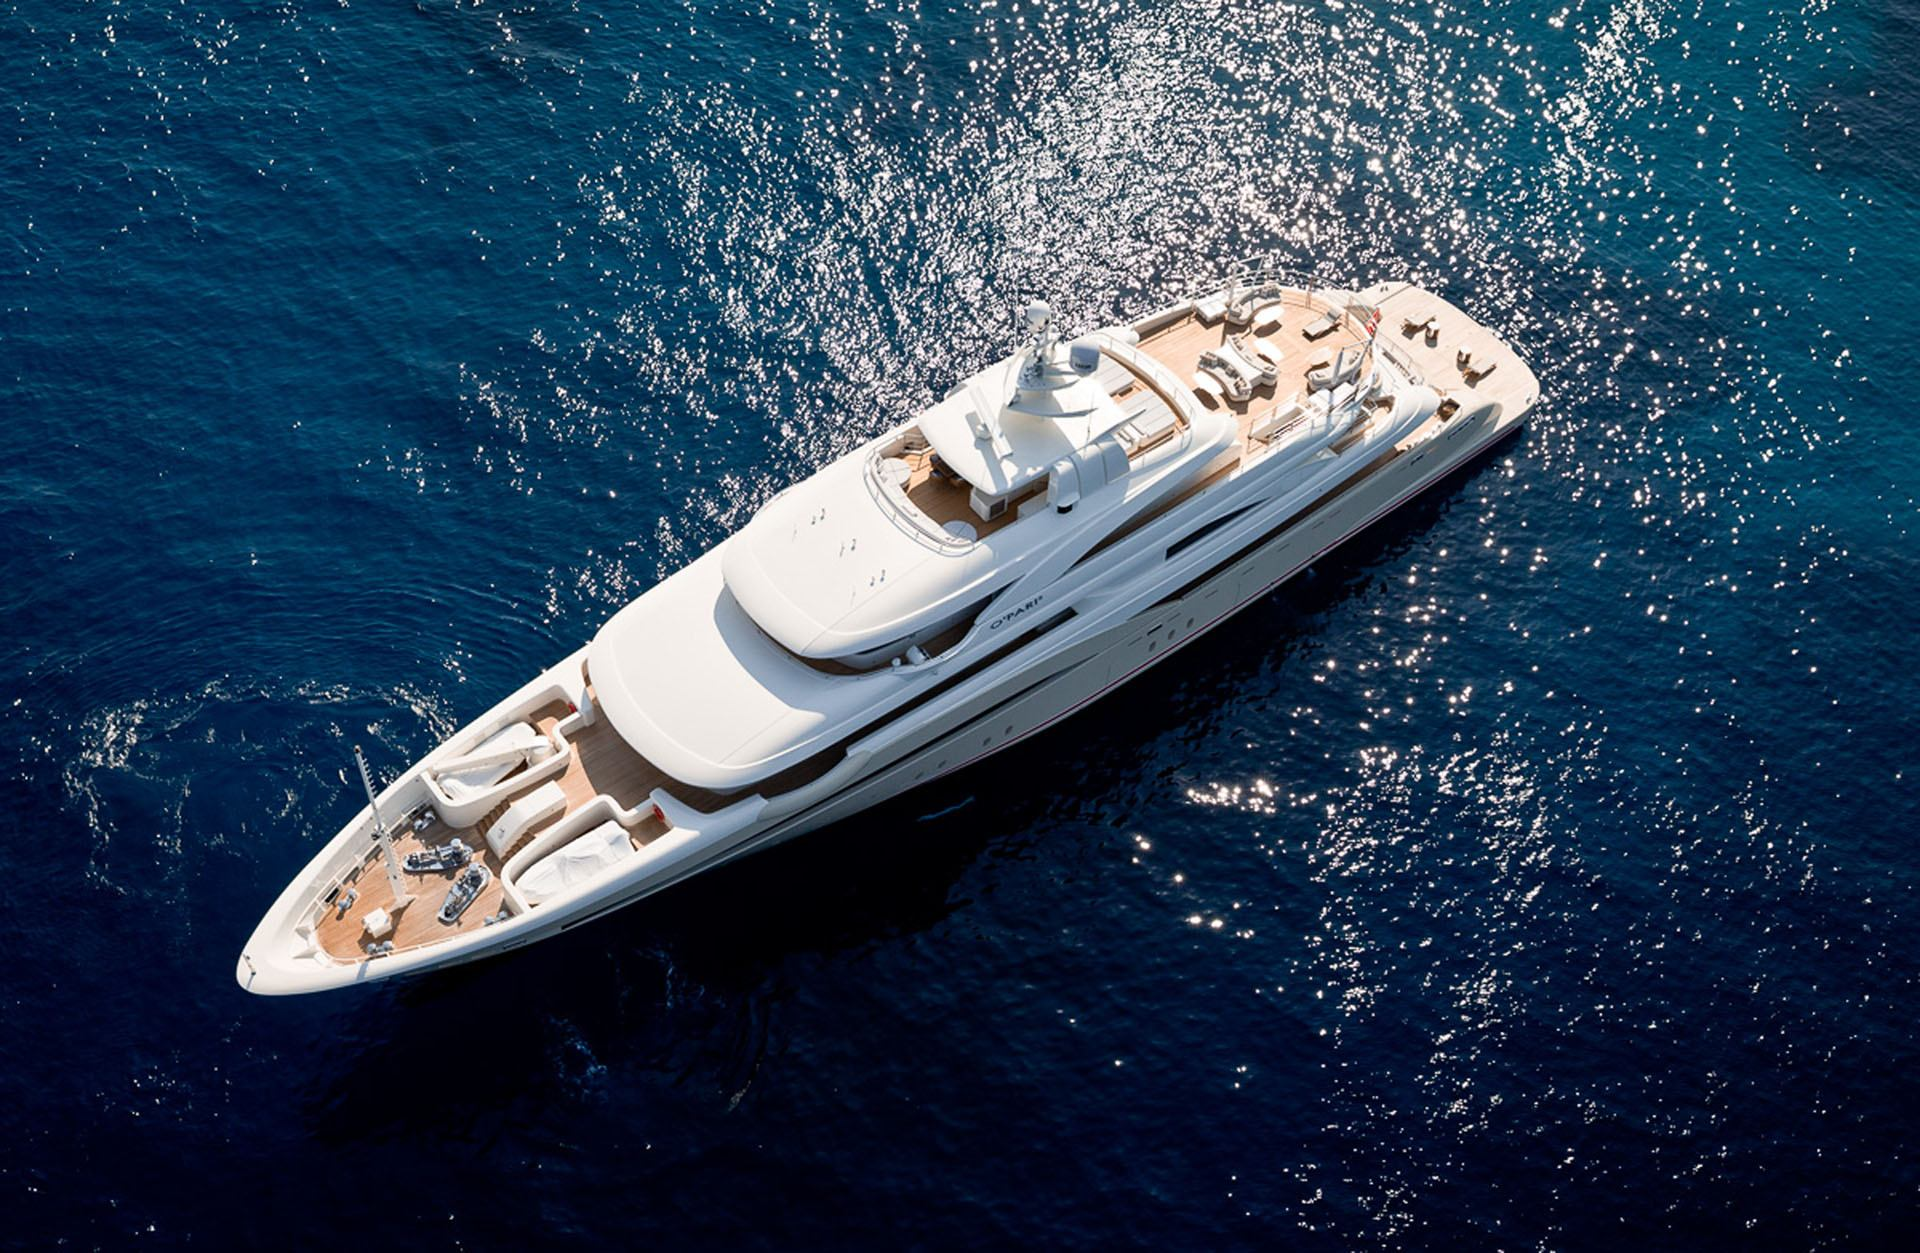 Private Yacht, Private Yacht, Vip Yacht, yach vacation, private yach vacation, Greece Luxury Yacht Charter, Luxury Vacation, yacht cruise